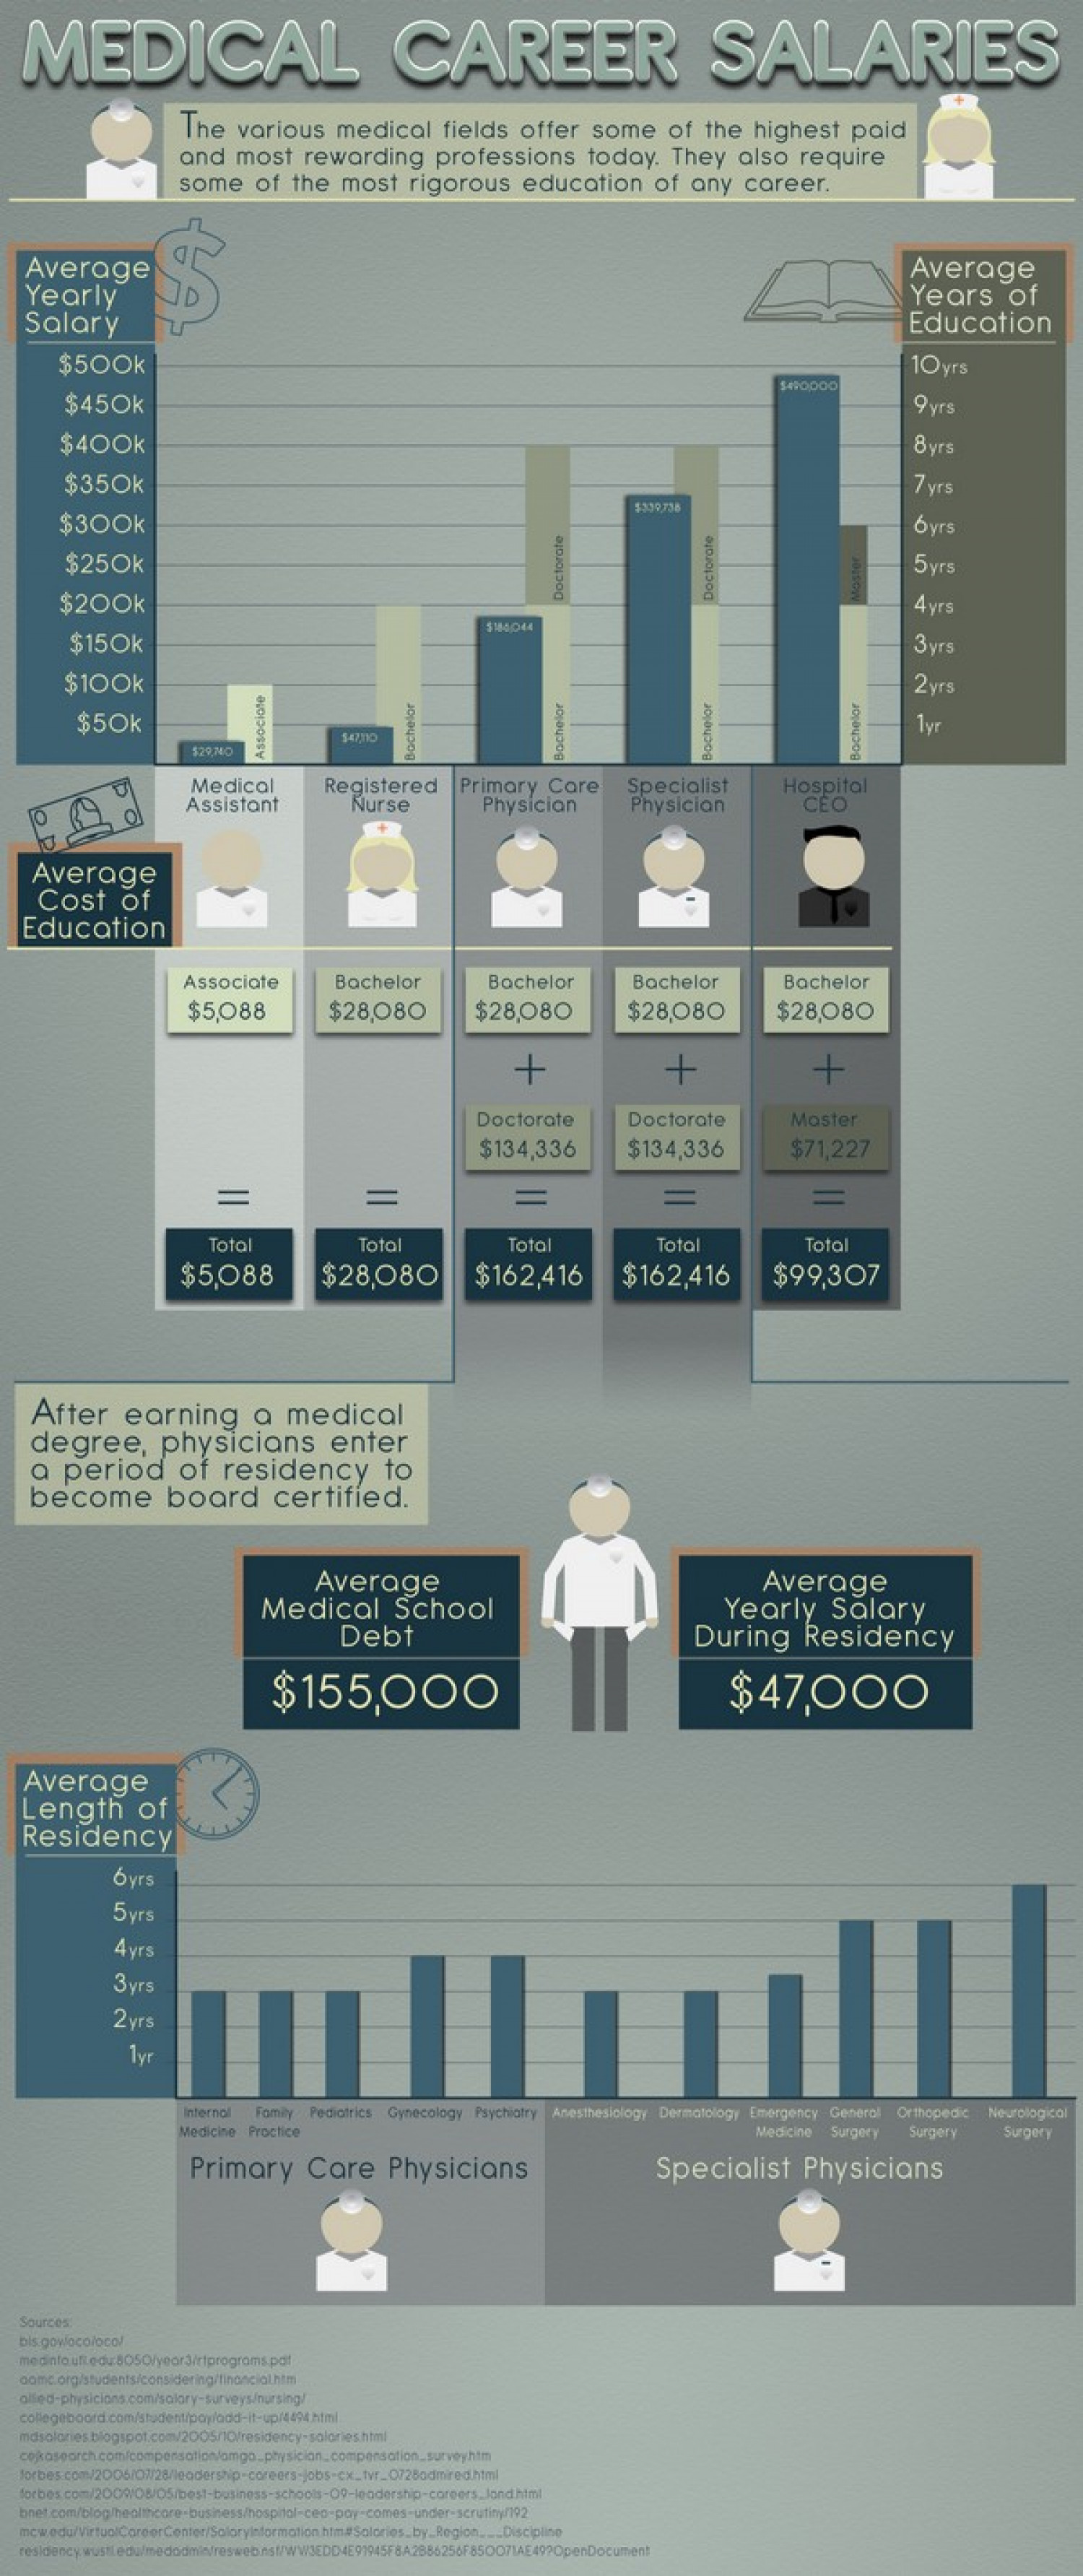 Medical Career Salaries Infographic